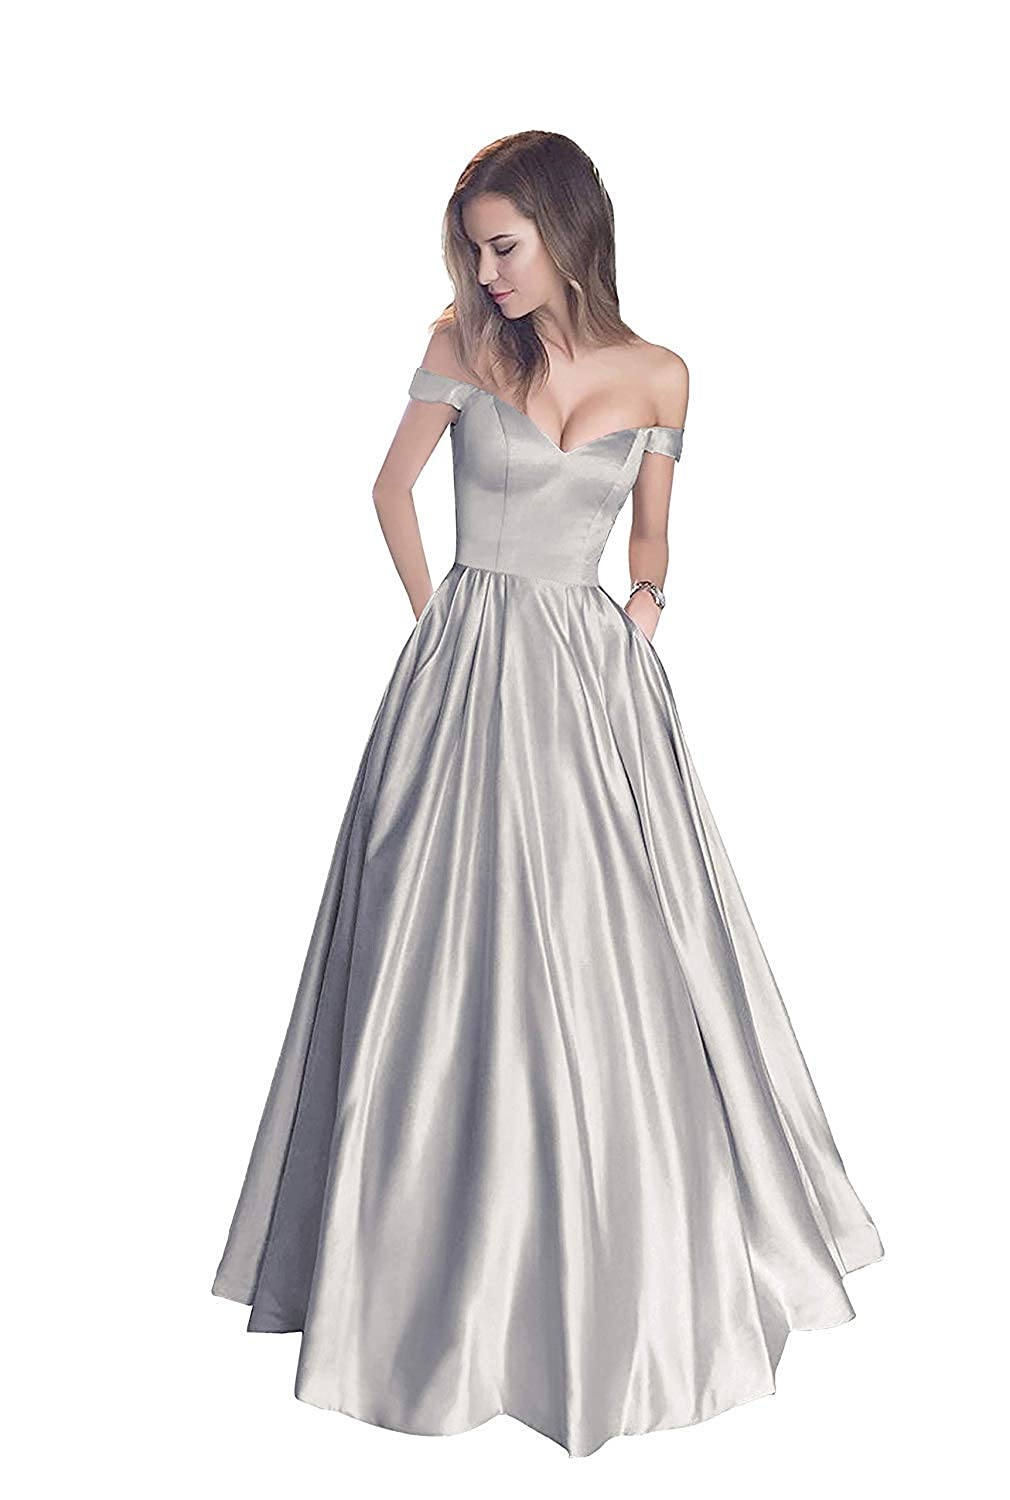 Silver Without Belt Liaoye Women's Off Shoulder Beaded Satin Evening Prom Dress Long V Neck Formal Party Gowns with Pocket